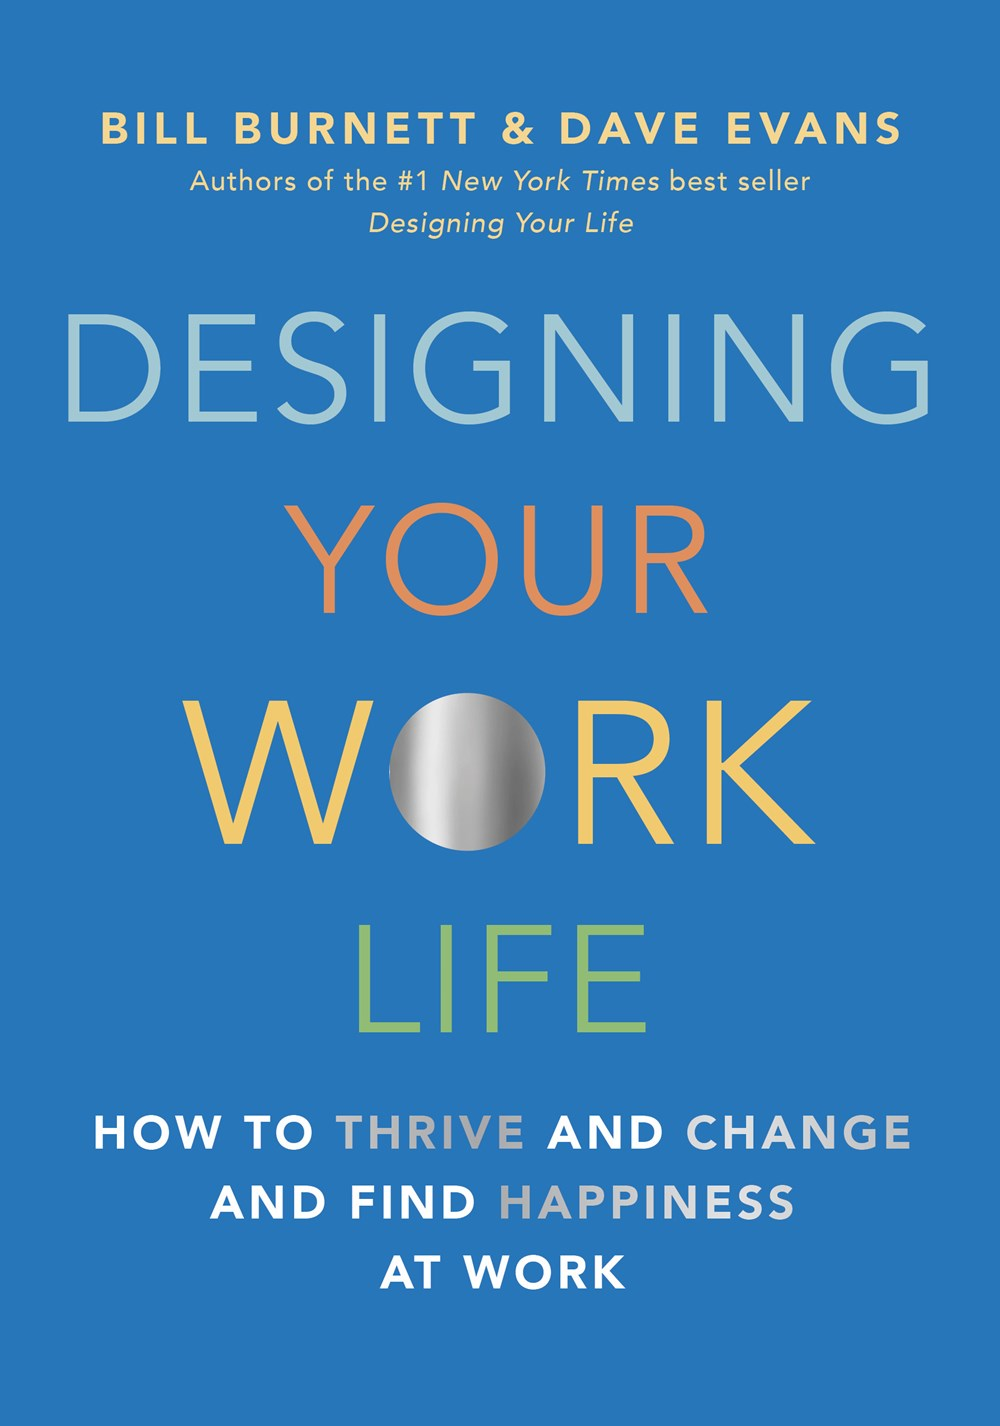 Designing Your Work Life : How to Thrive and Change and Find Happiness at Work